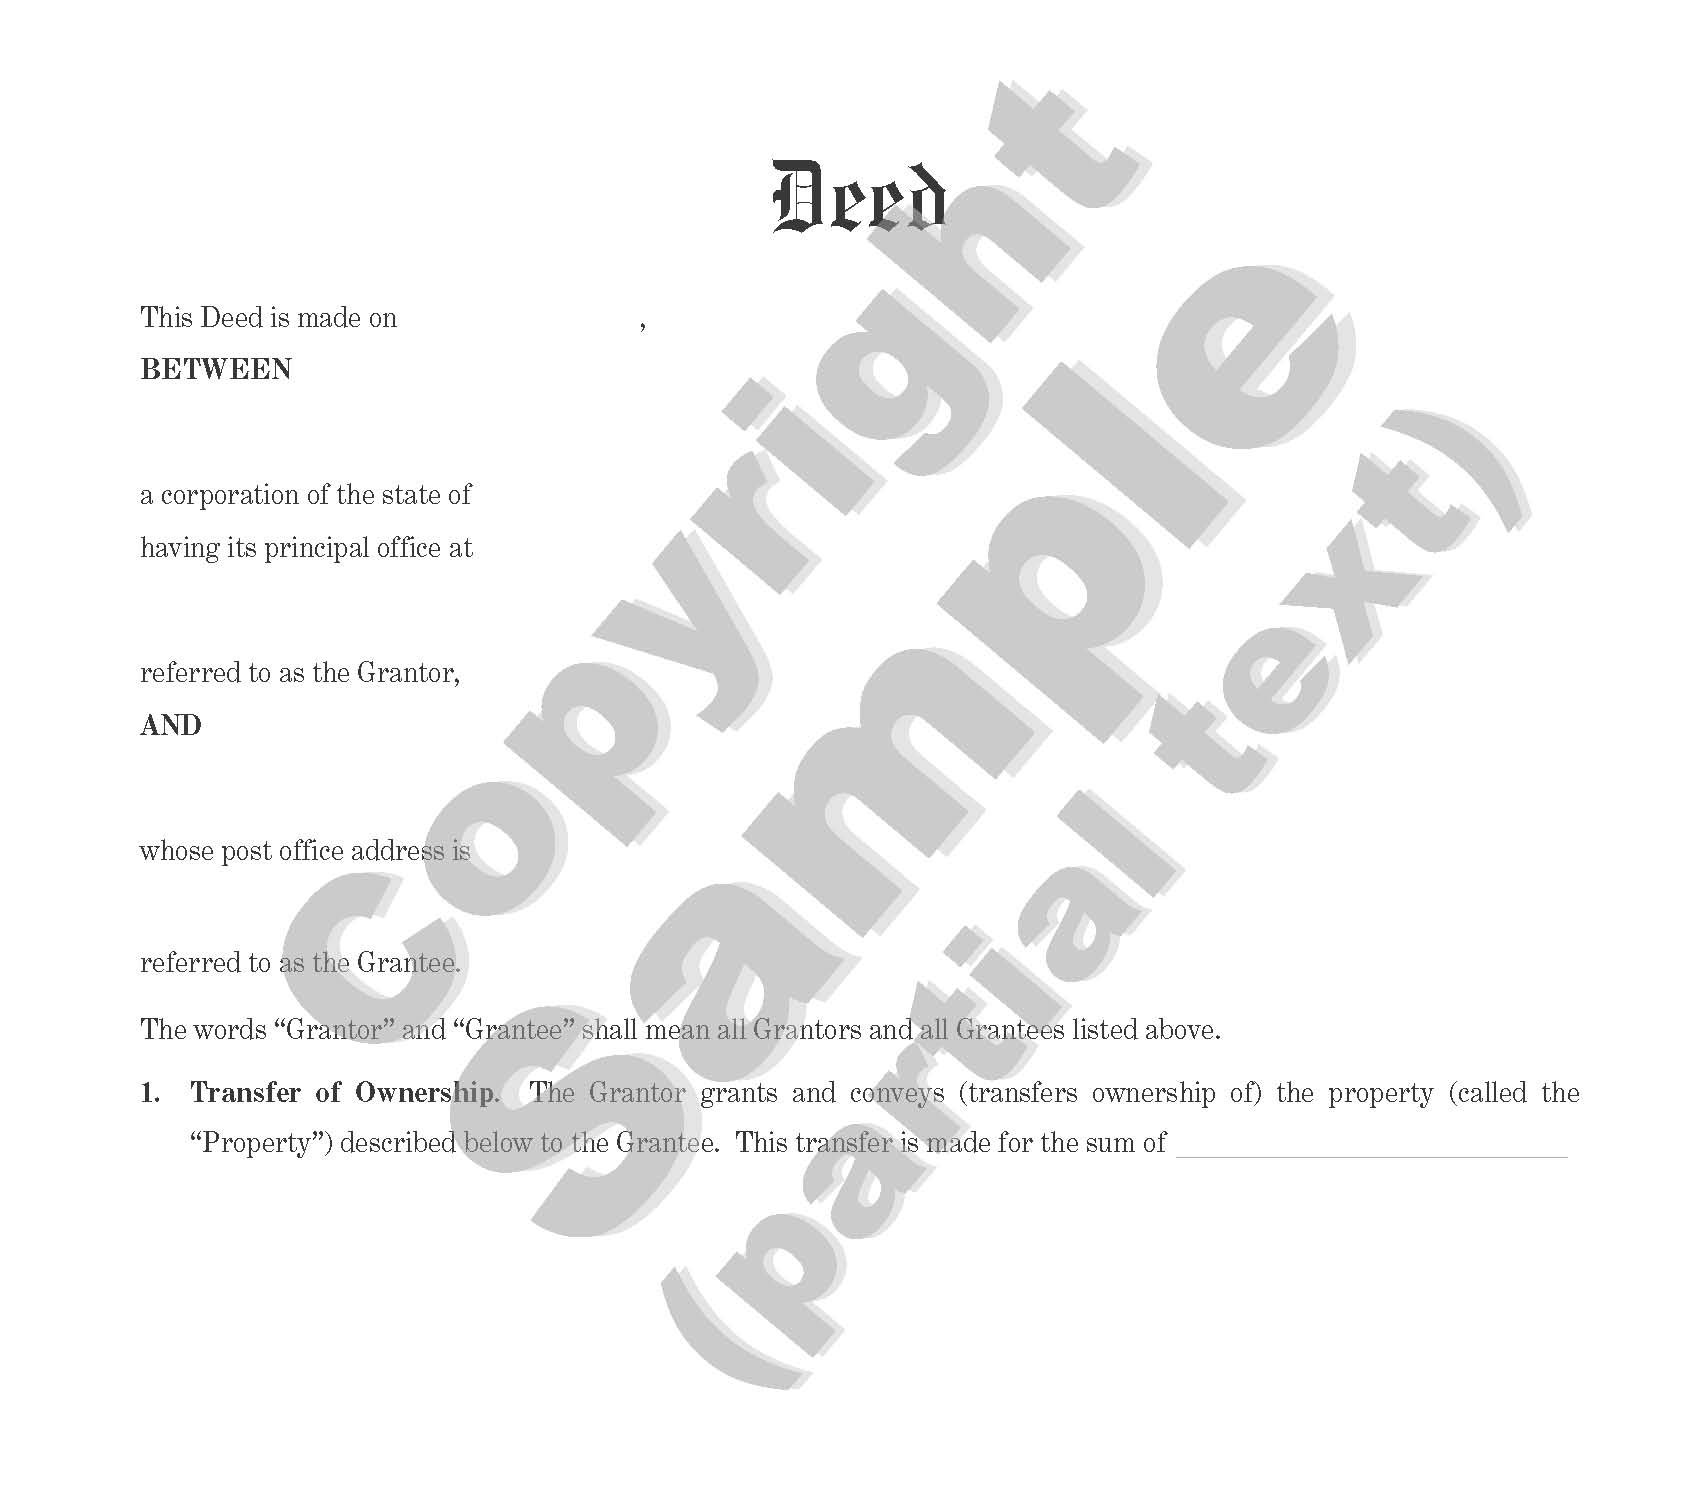 Deed - Bargain and Sale - Corporate to Individual or Corporate - Plain Language